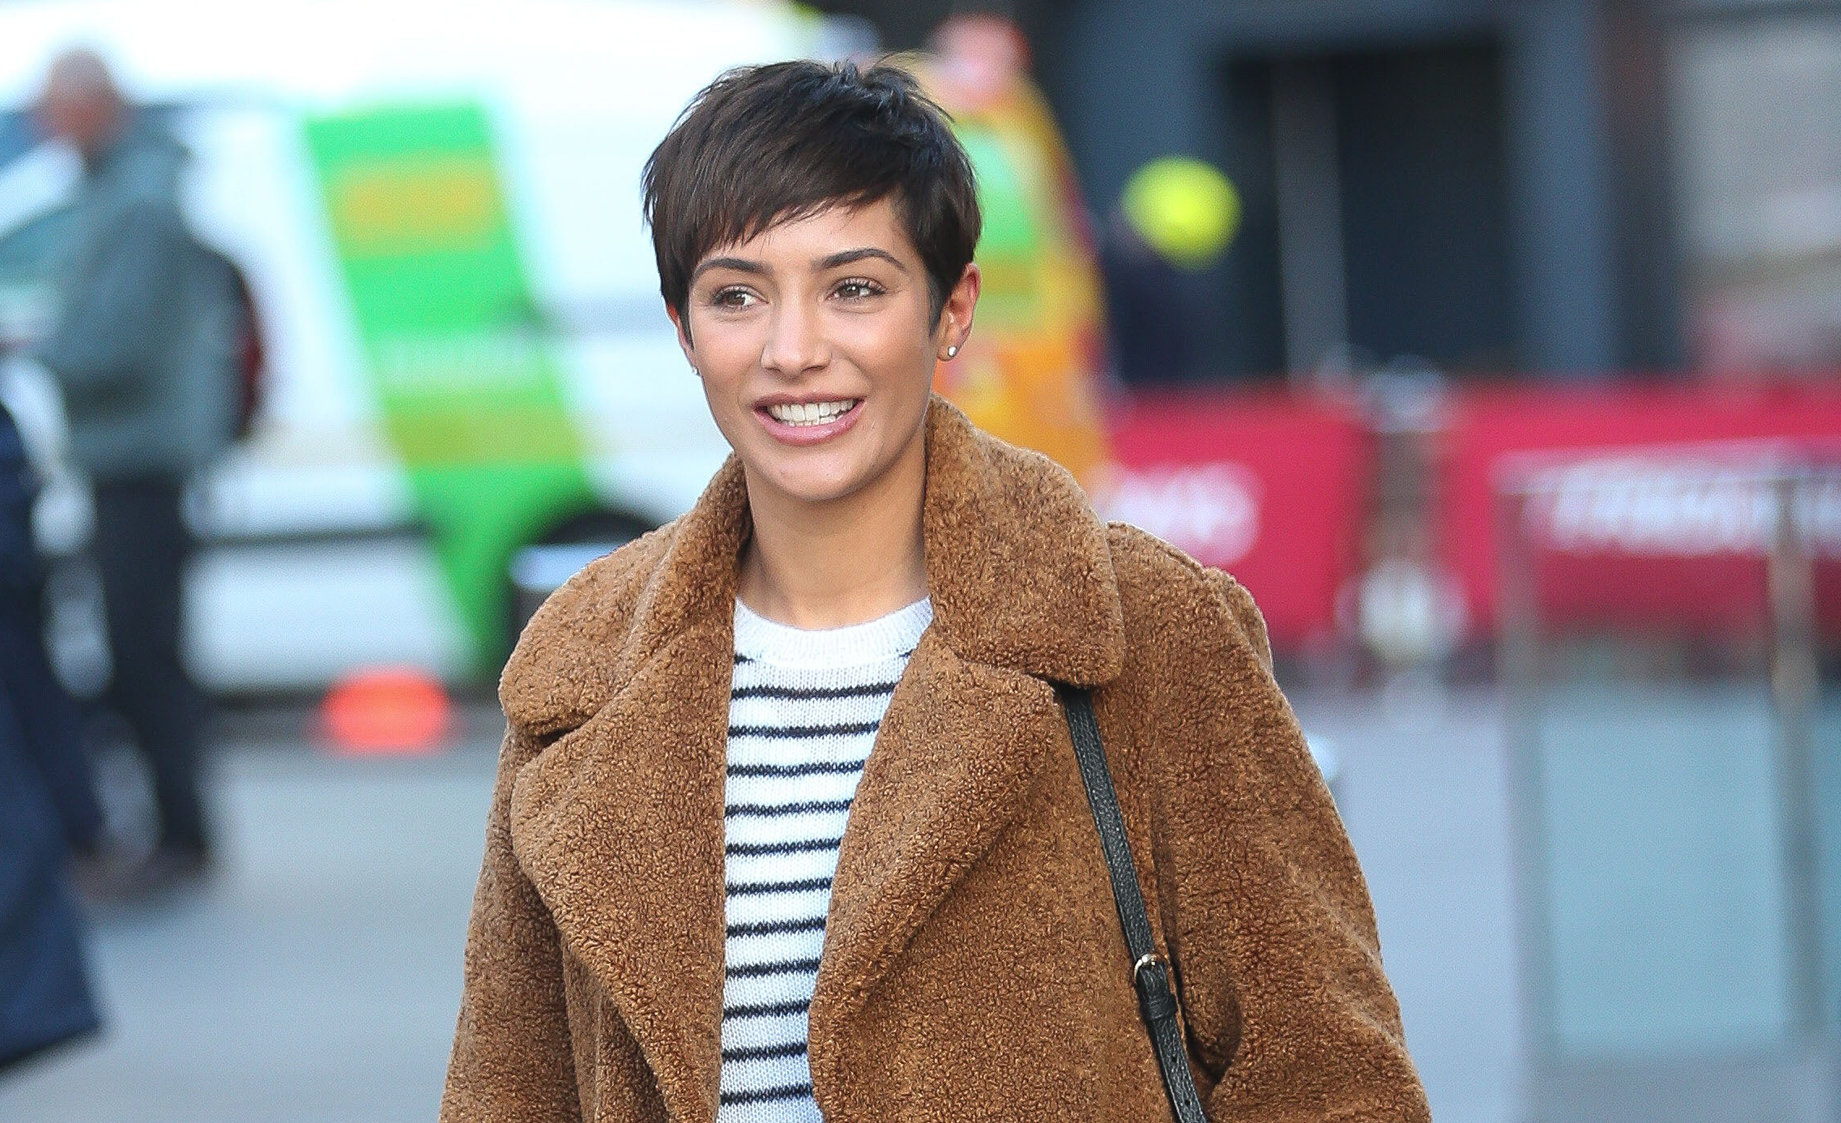 Frankie Bridge posts ridiculously cute pics of her kids welcoming Daddy home